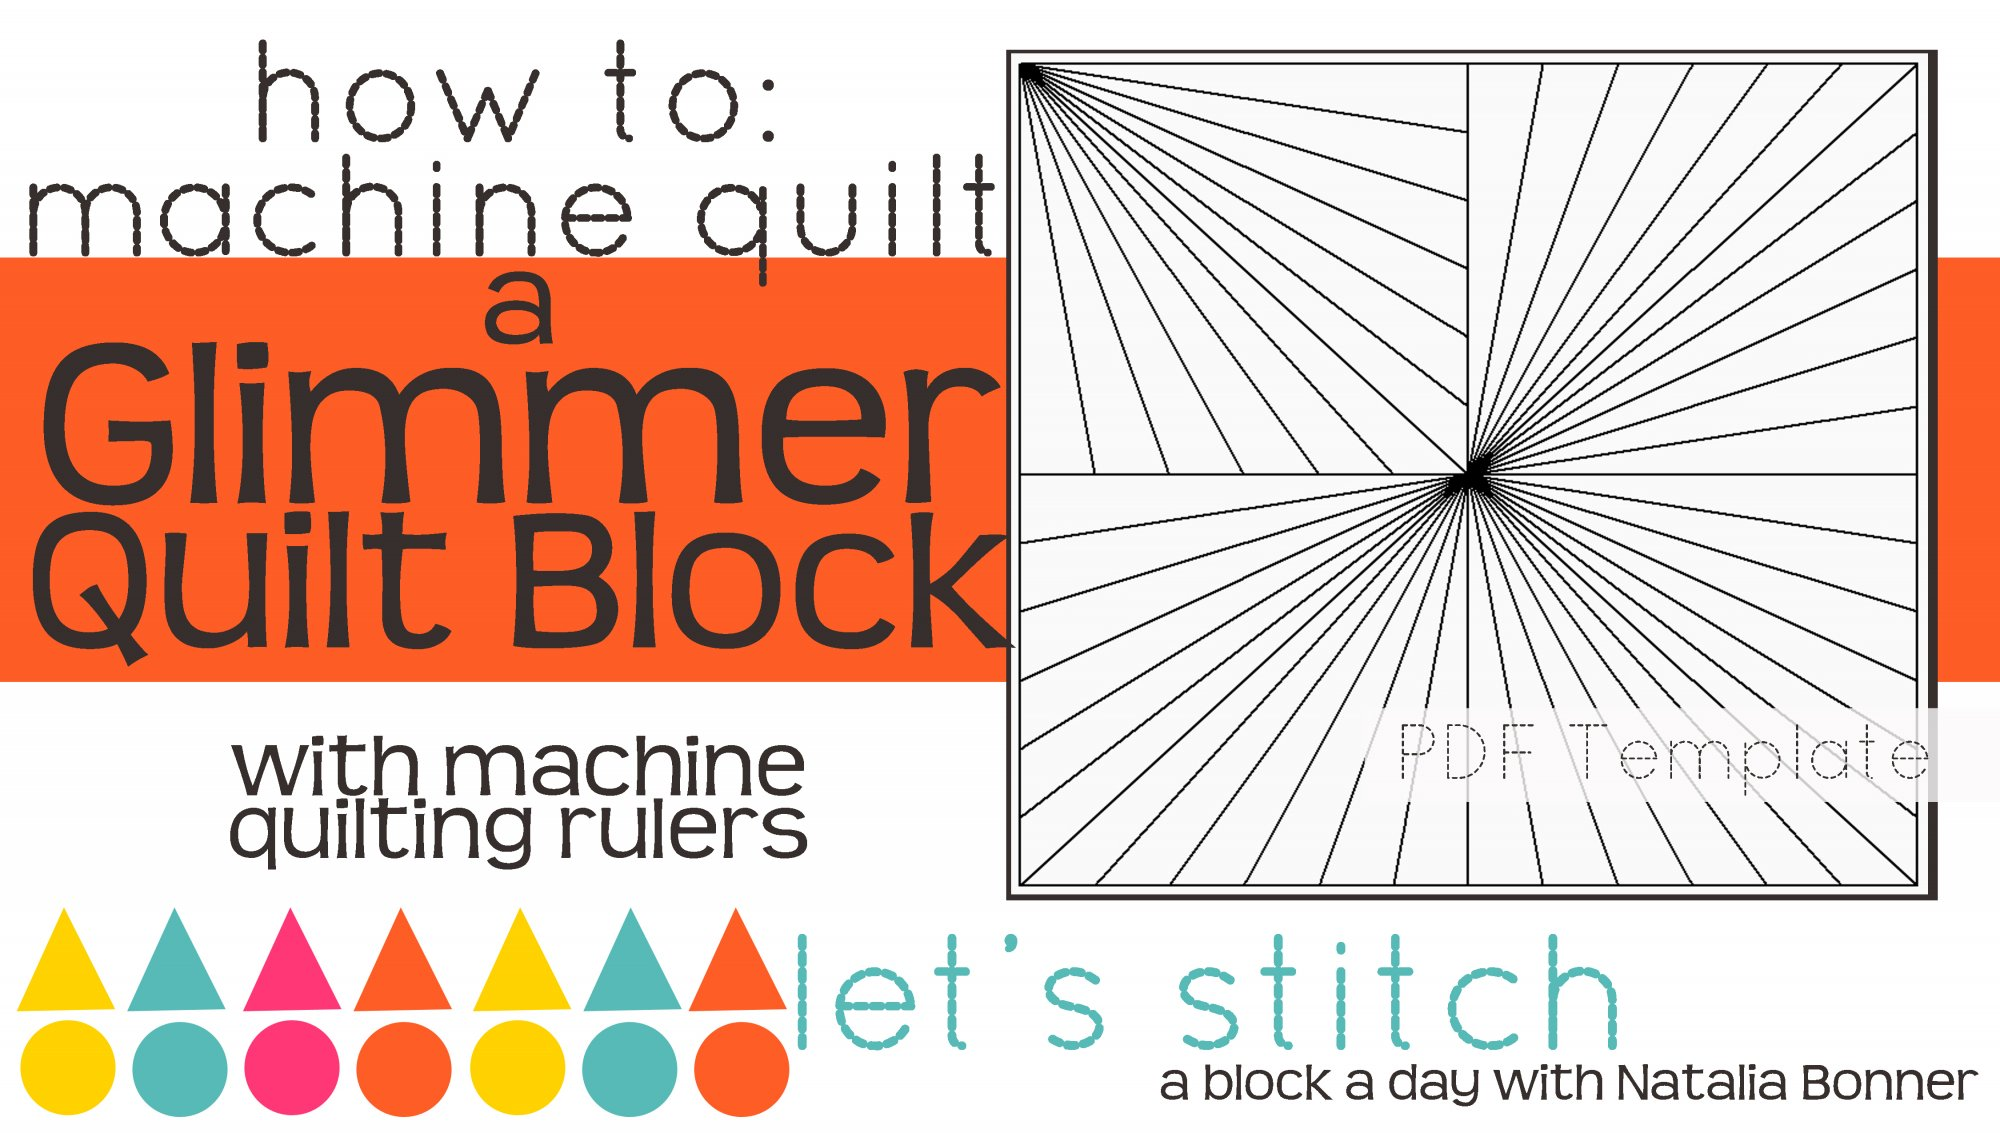 Let's Stitch - A Block a Day With Natalia Bonner - PDF - Glimmer